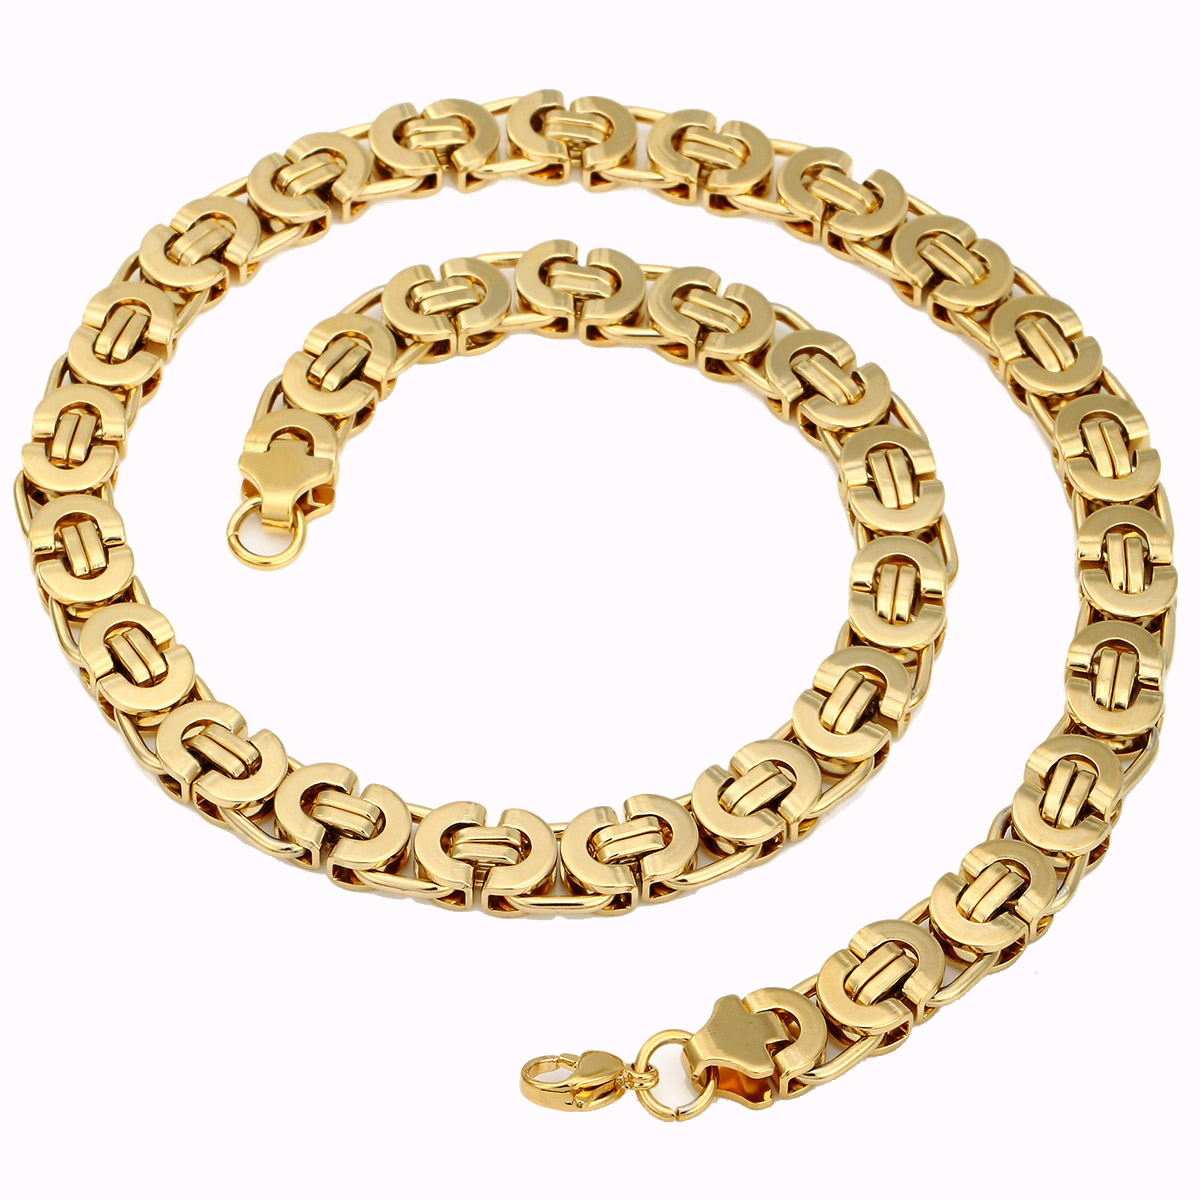 Mens Gold Byzantine Necklace: Black Silver Gold Chain Necklaces For Mens Byzantine